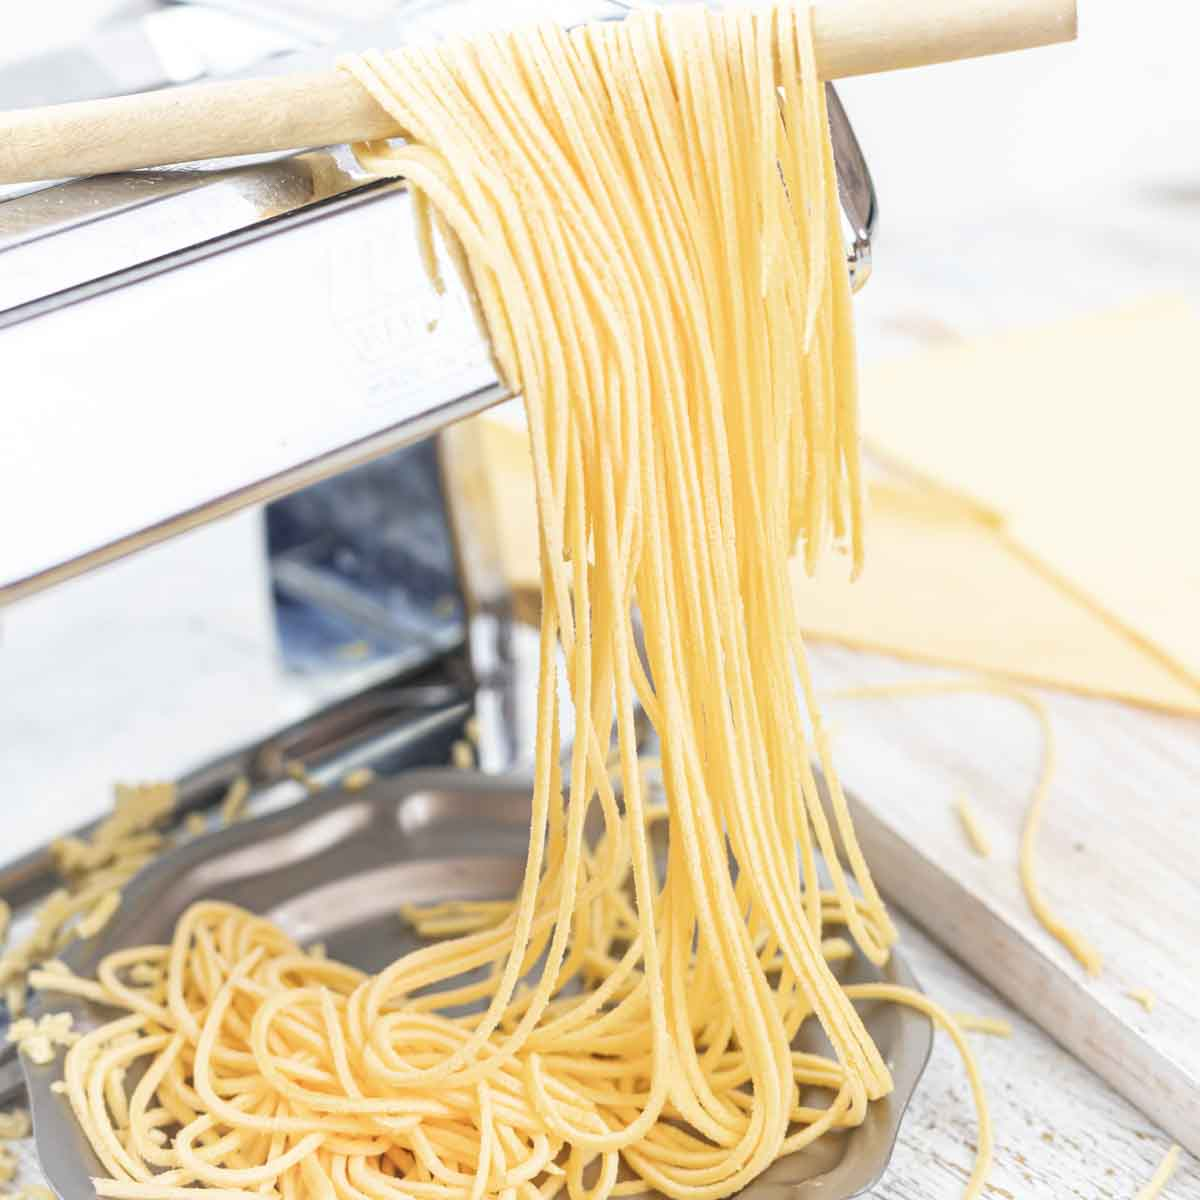 Low Carb Spaghetti Noodles made with pasta machine